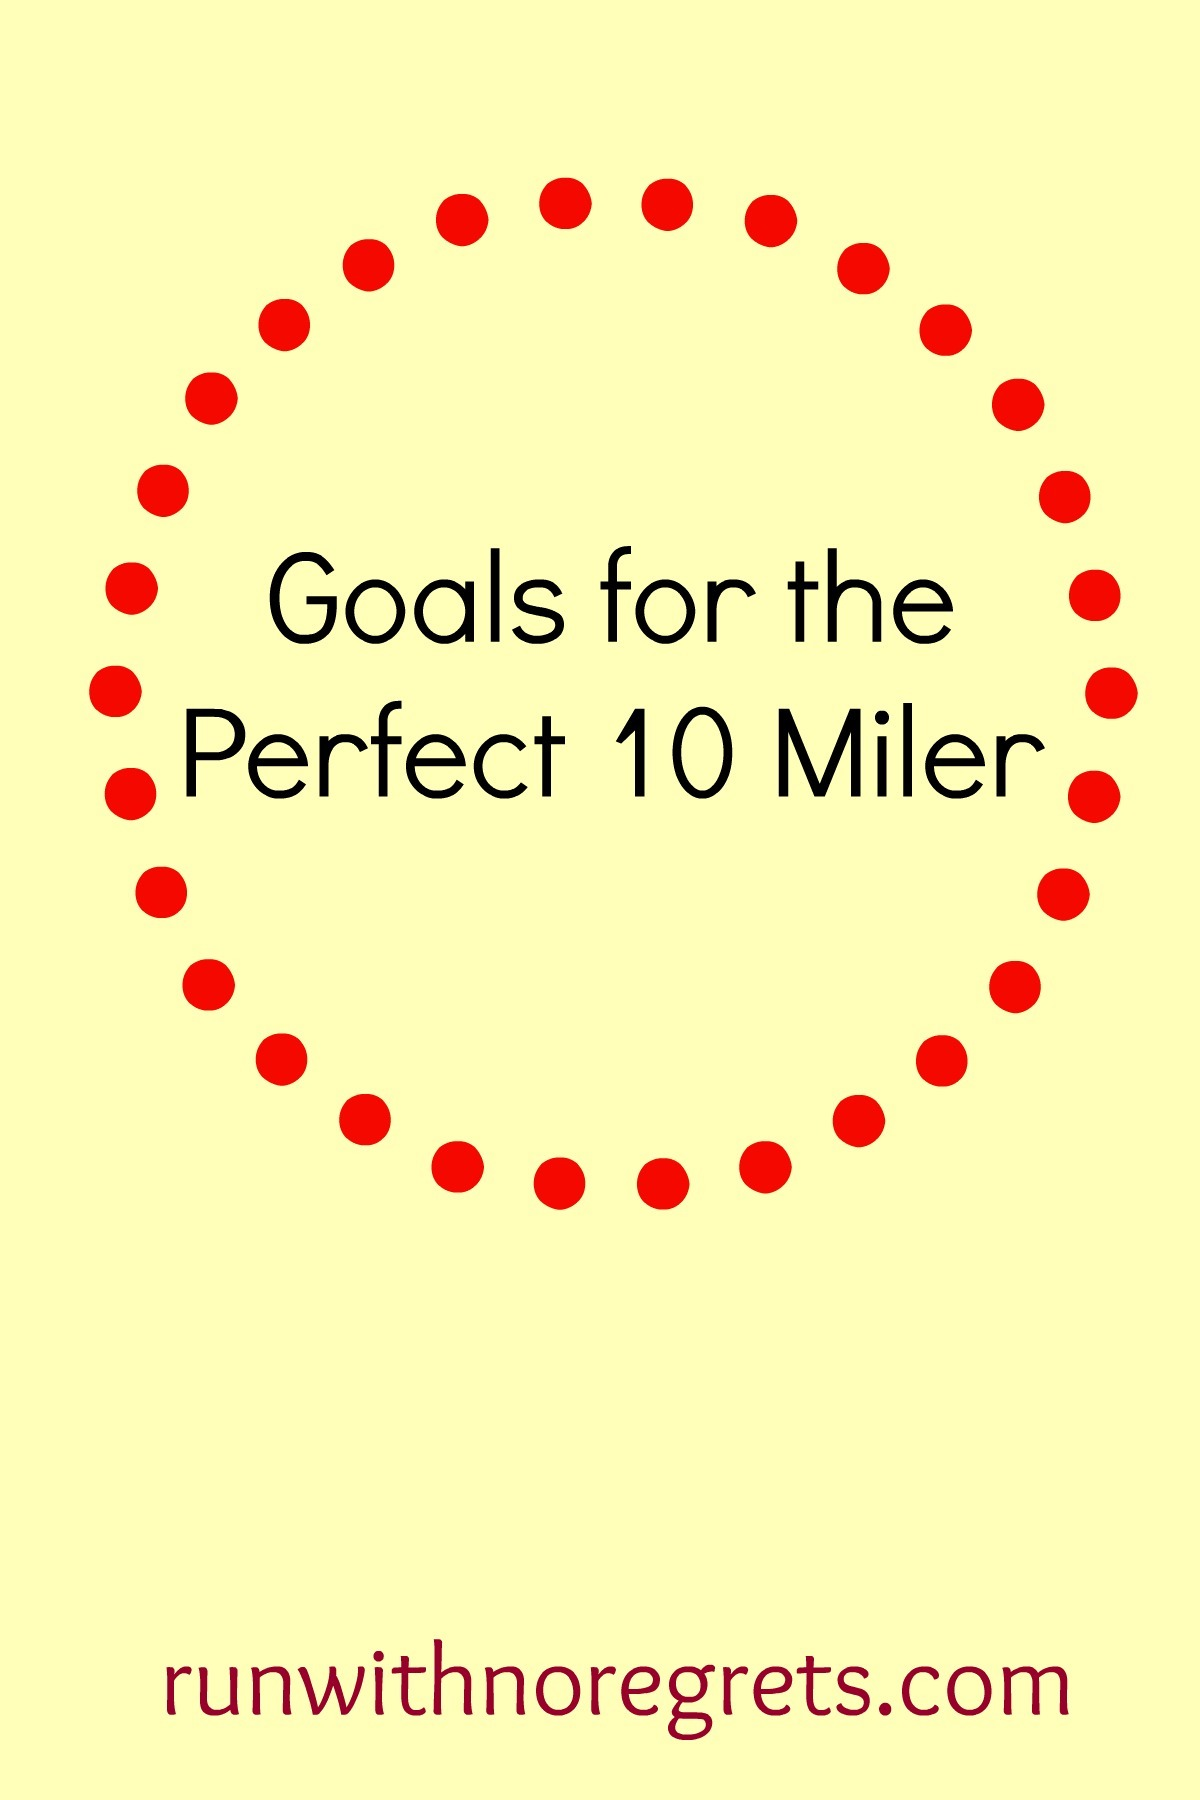 I'm sharing my goals for the Perfect 10 Miler taking place in Mercer County, NJ on October 23, 2016! Find more running adventures at runwithnoregrets.com!